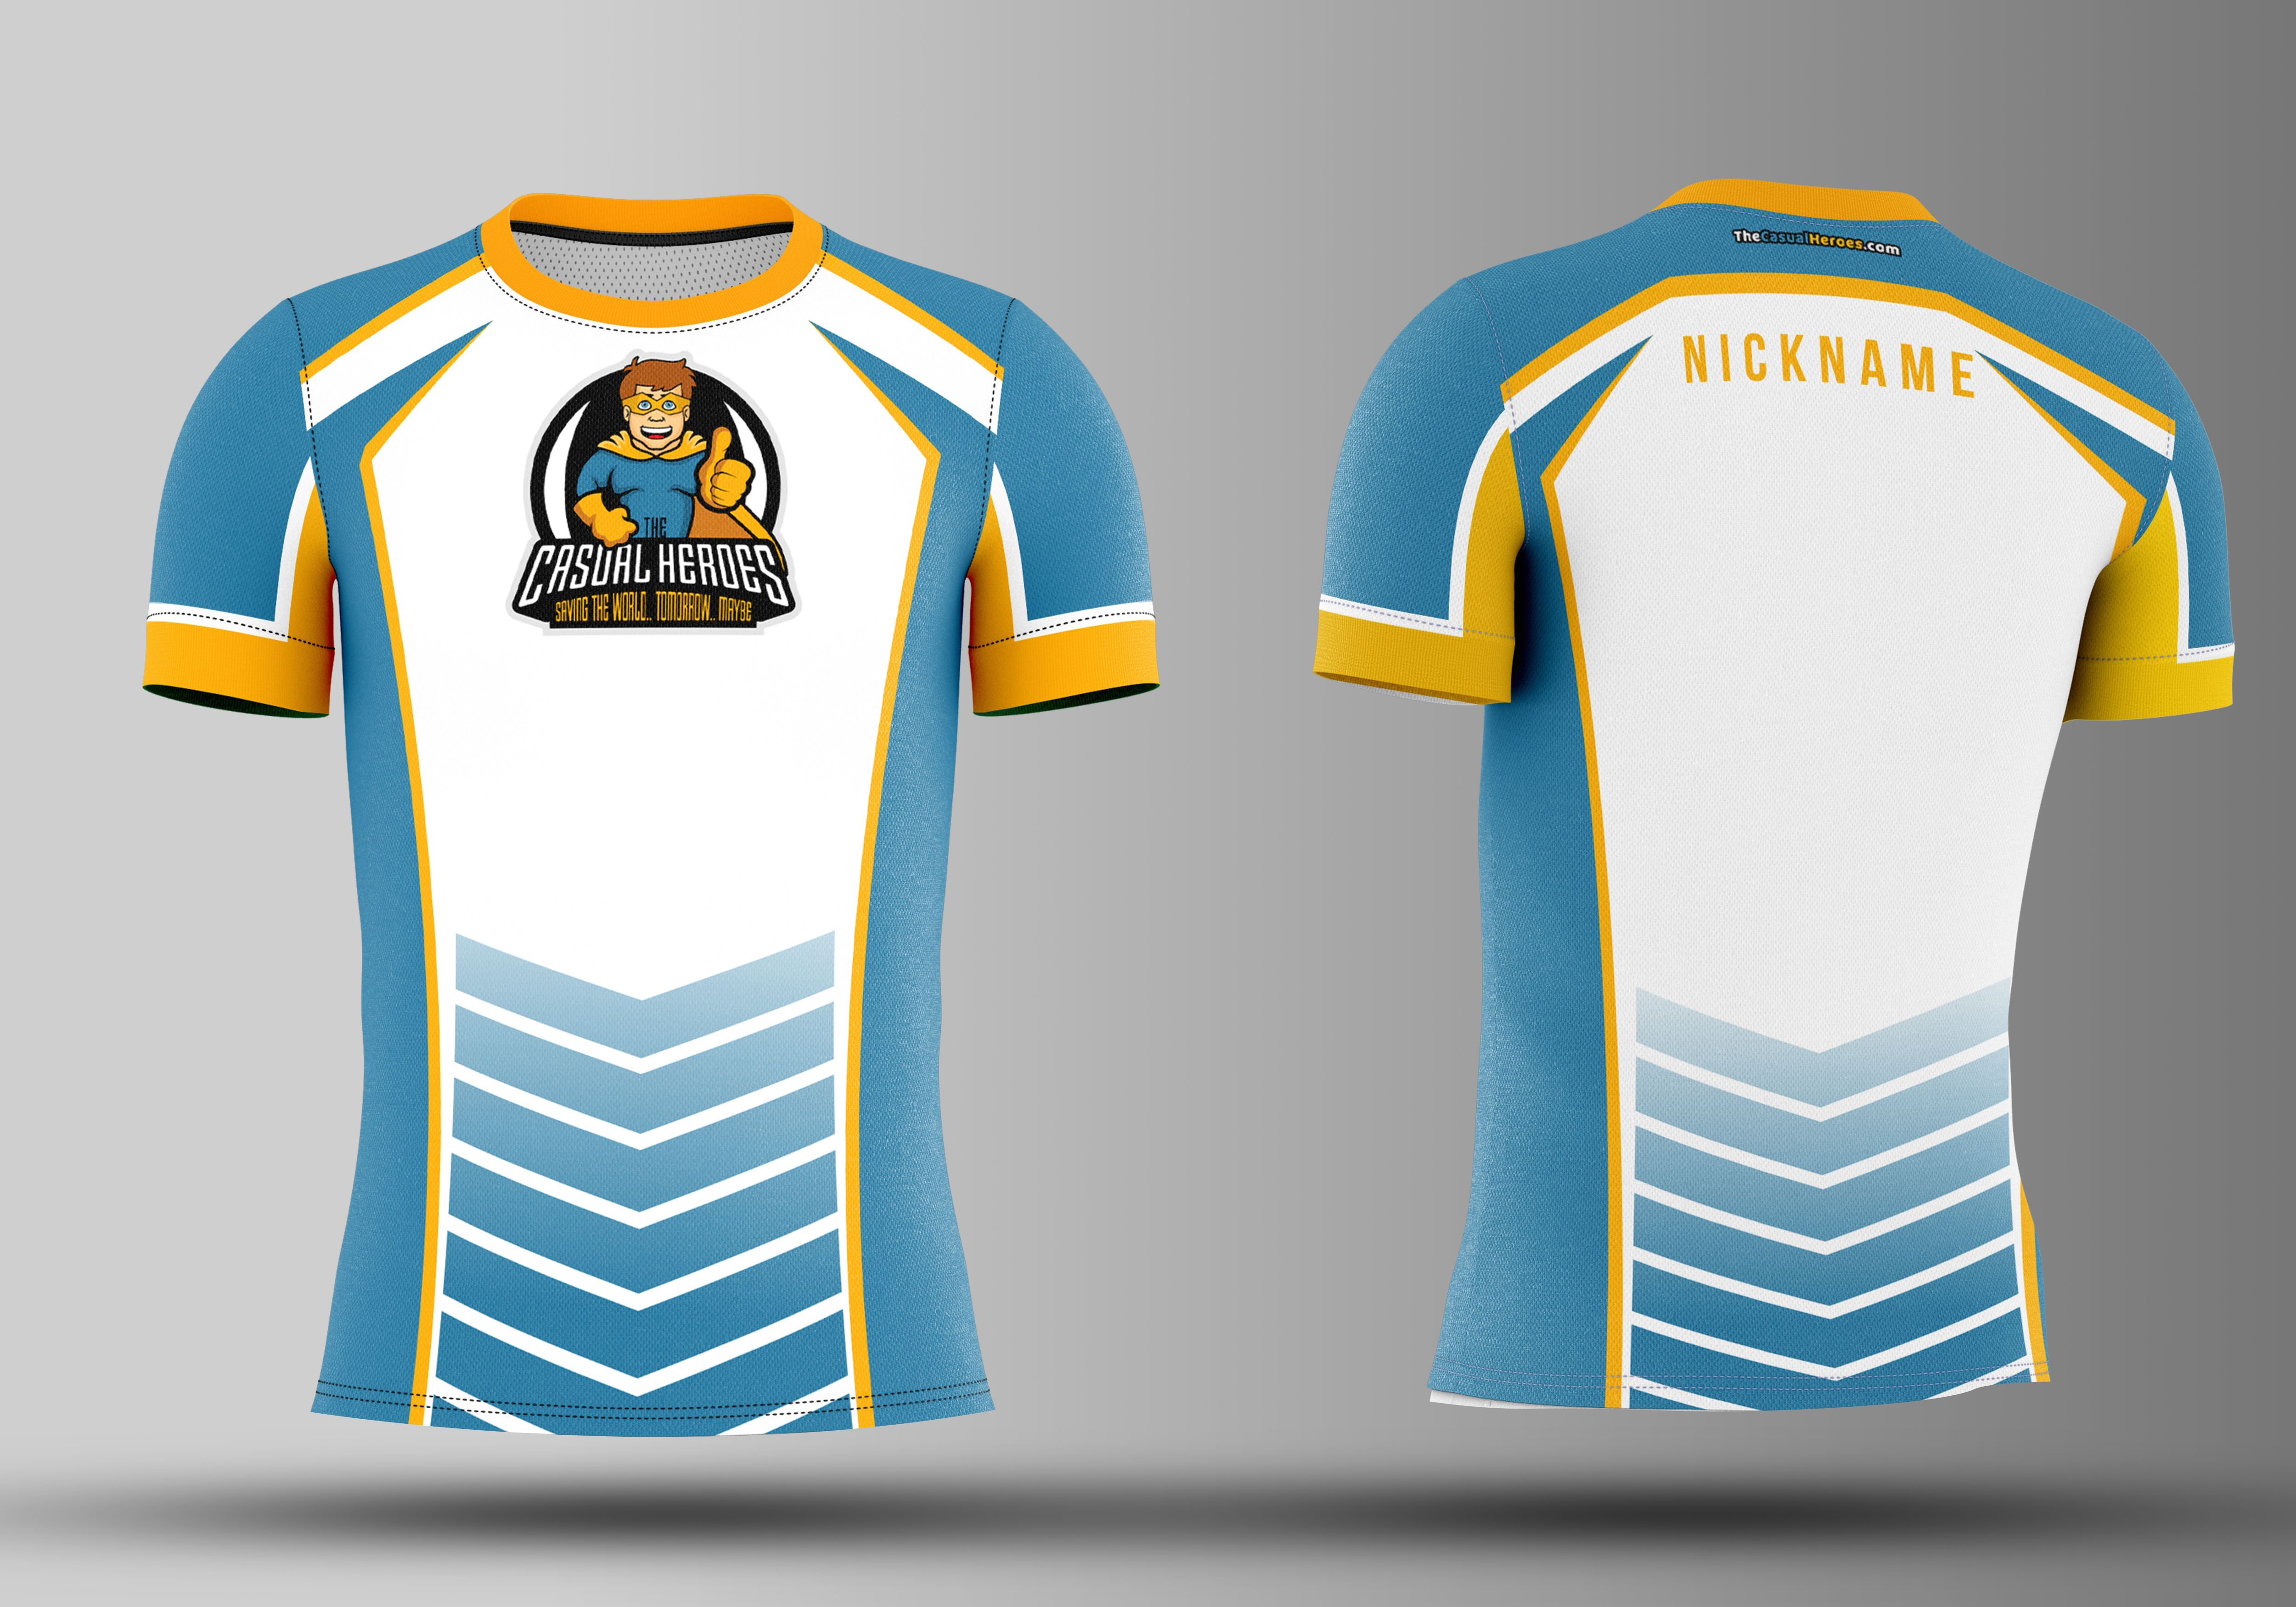 Download under21 : I will design jersey for esports,soccer, etc in ...